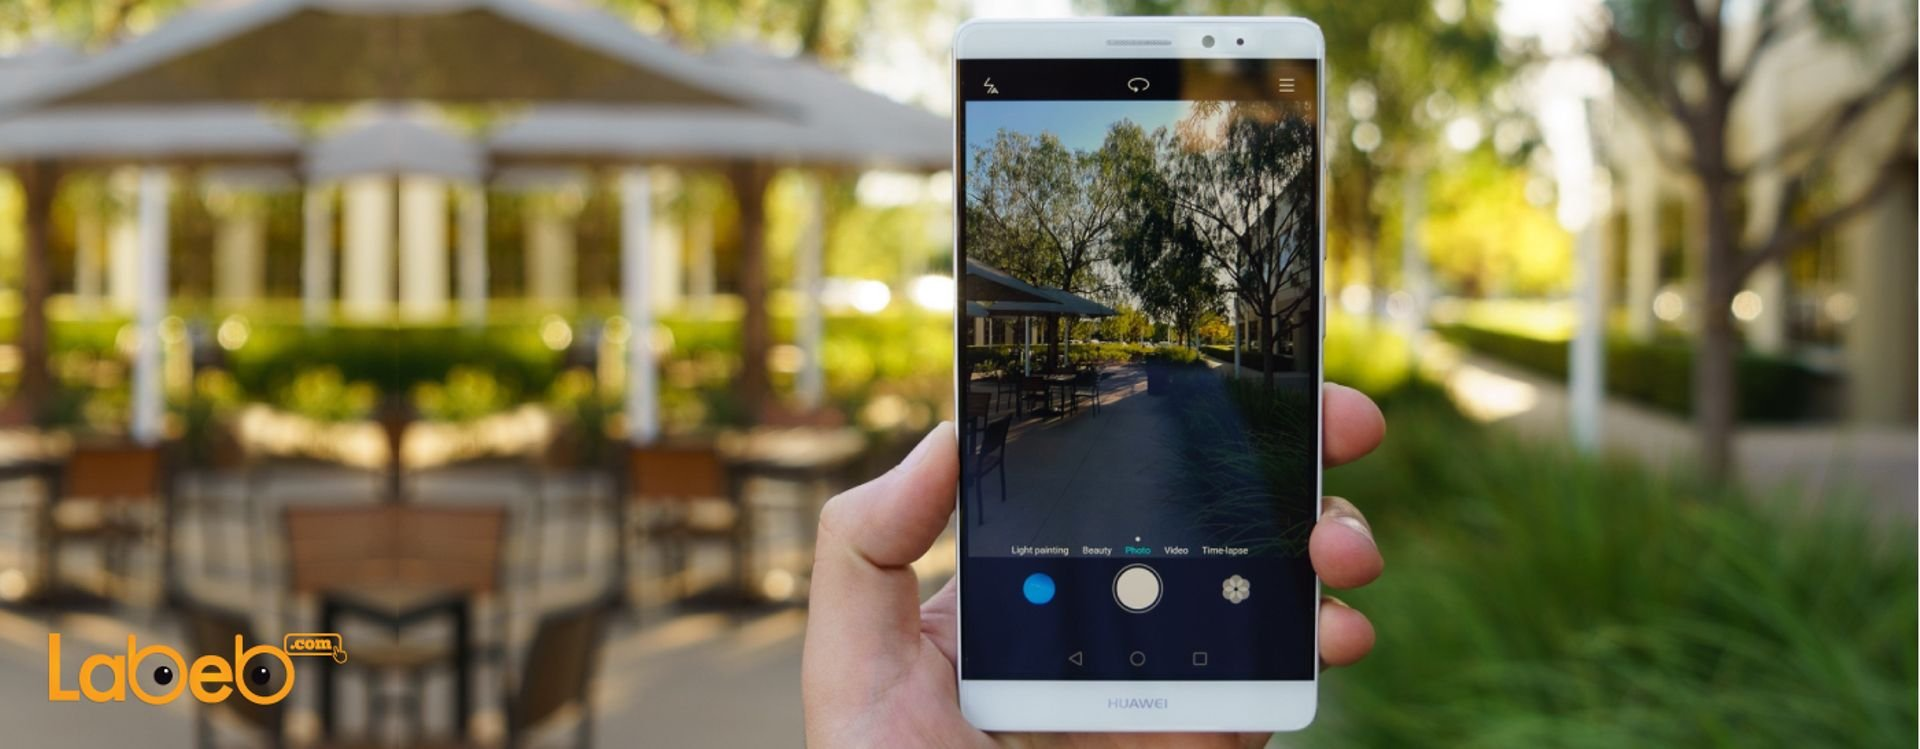 Huawei Mate 8 with a 6.0 Inch Screen is considered a Big Phone.